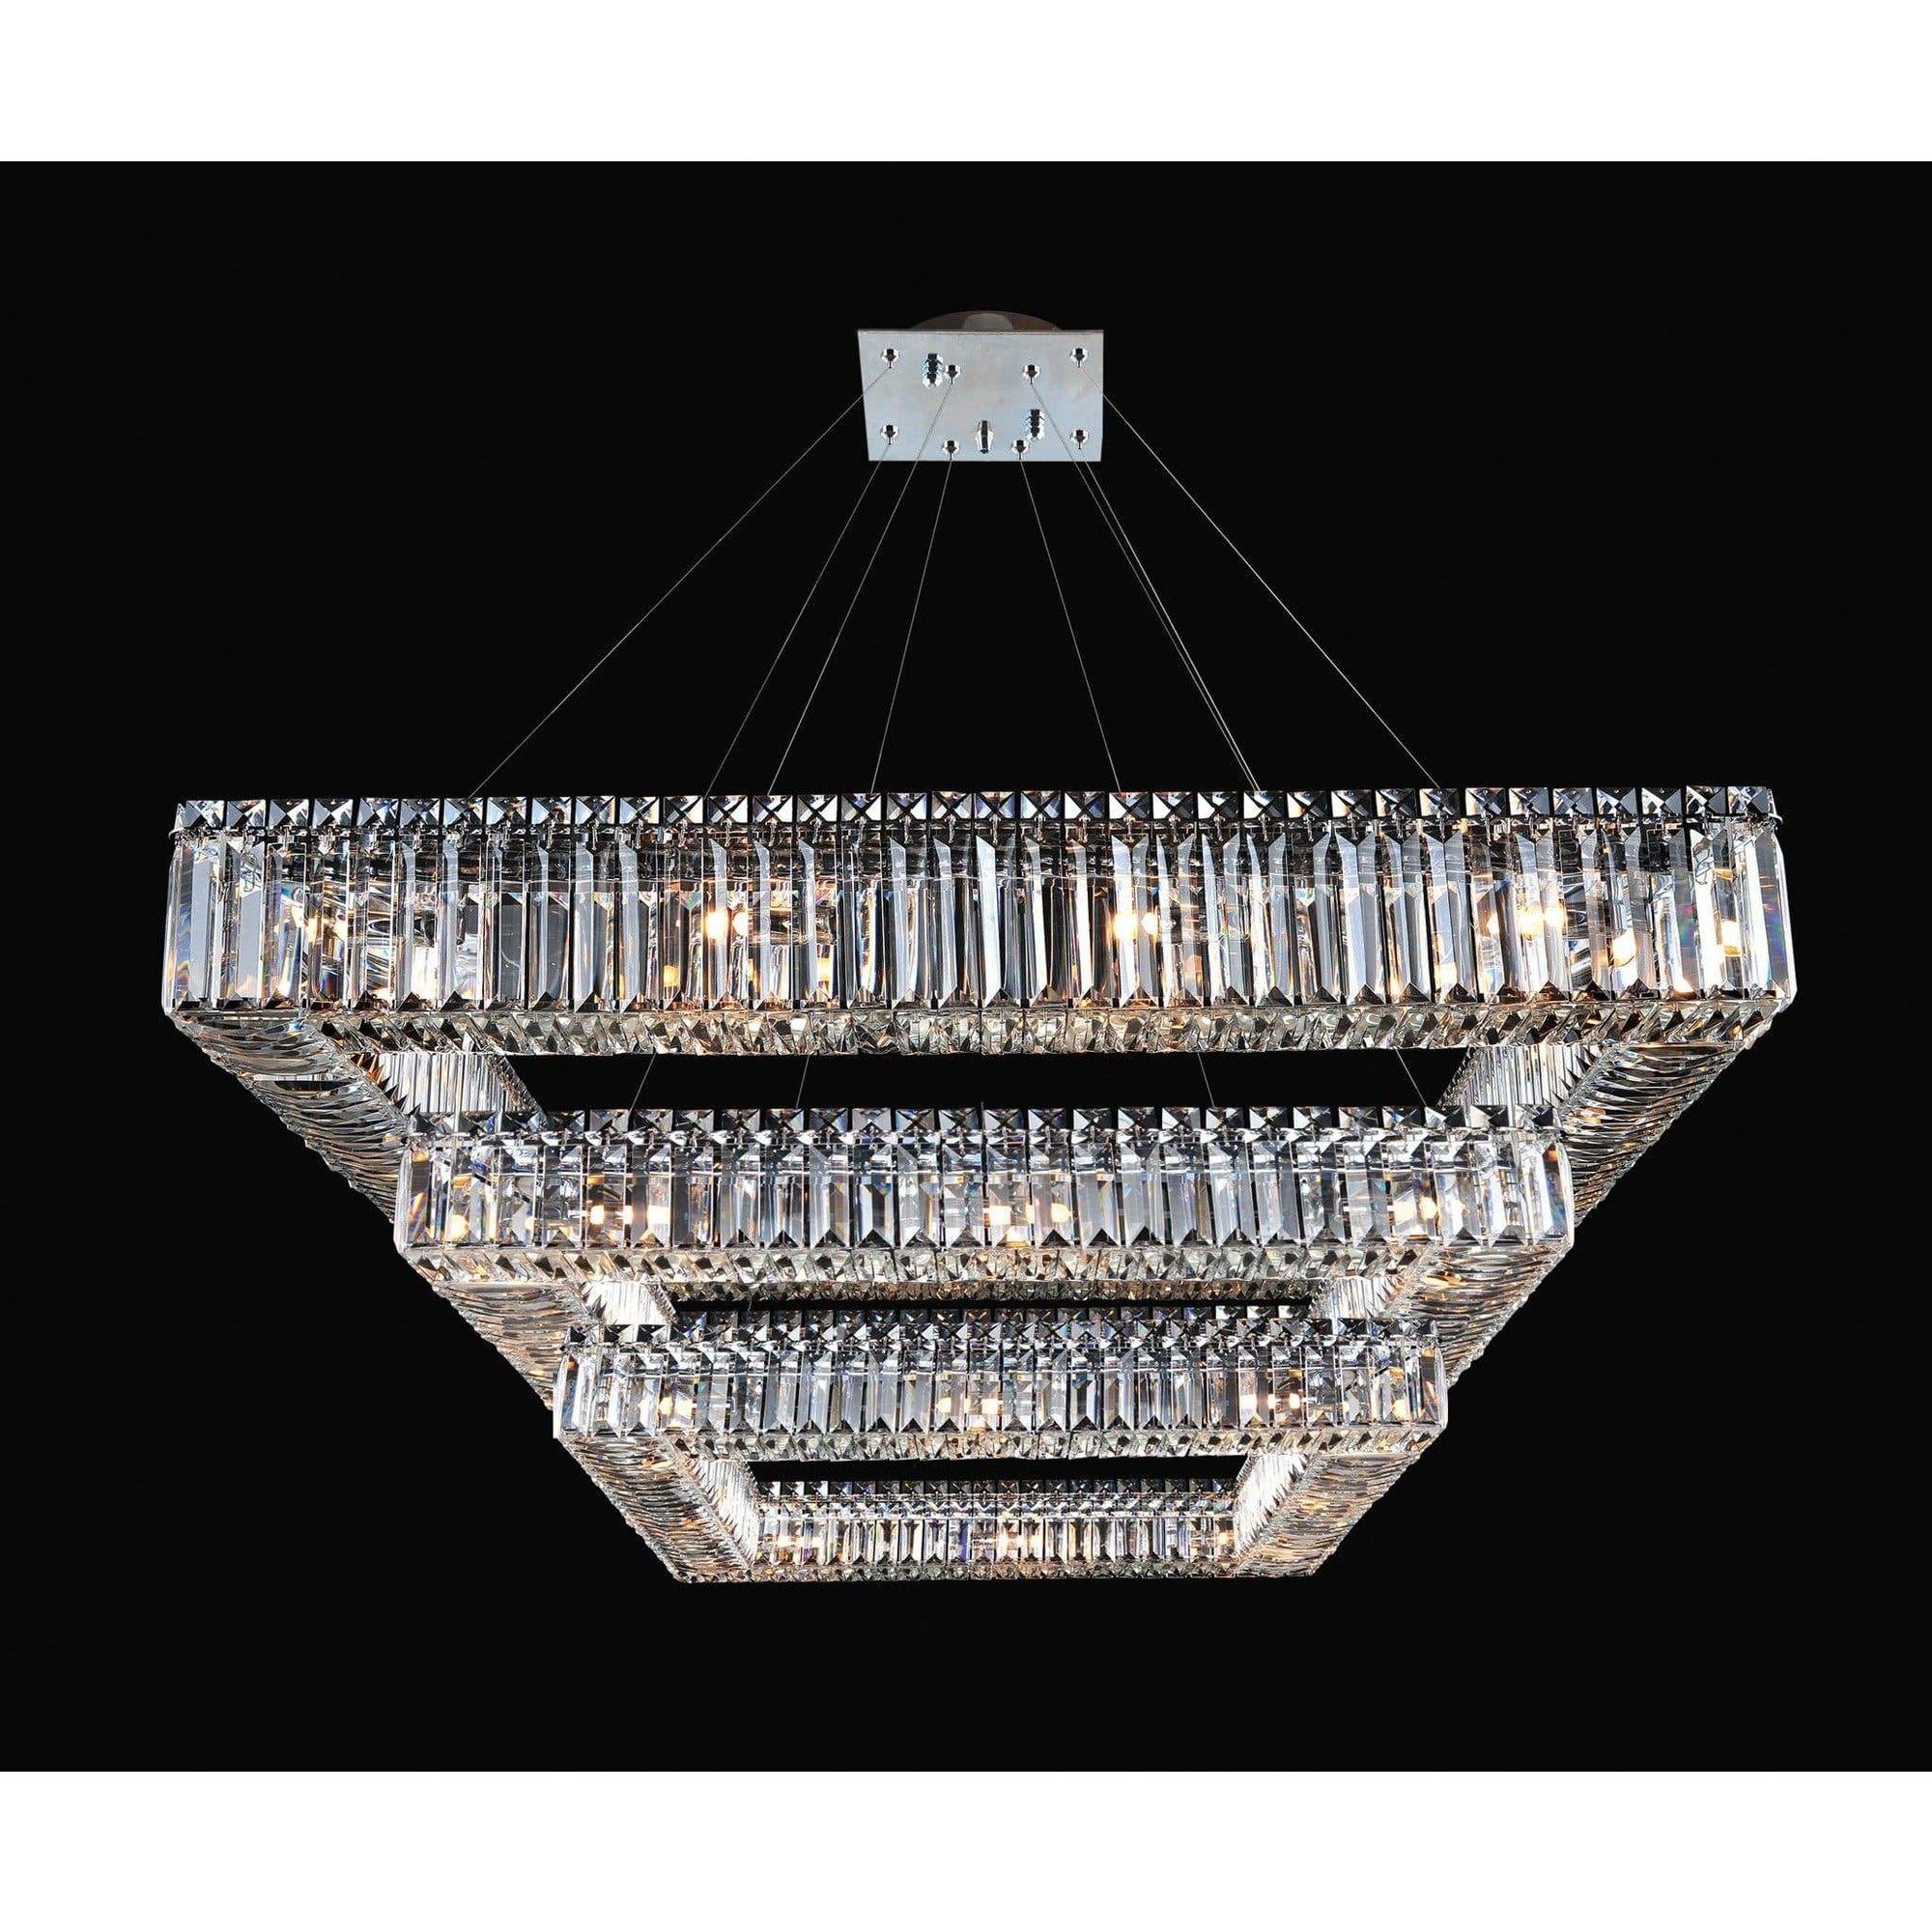 Allegri by Kalco Lighting Pendants Chrome / Firenze Clear Quadro 35 Inch Square 3 Tier Pendant From Allegri by Kalco Lighting 11780